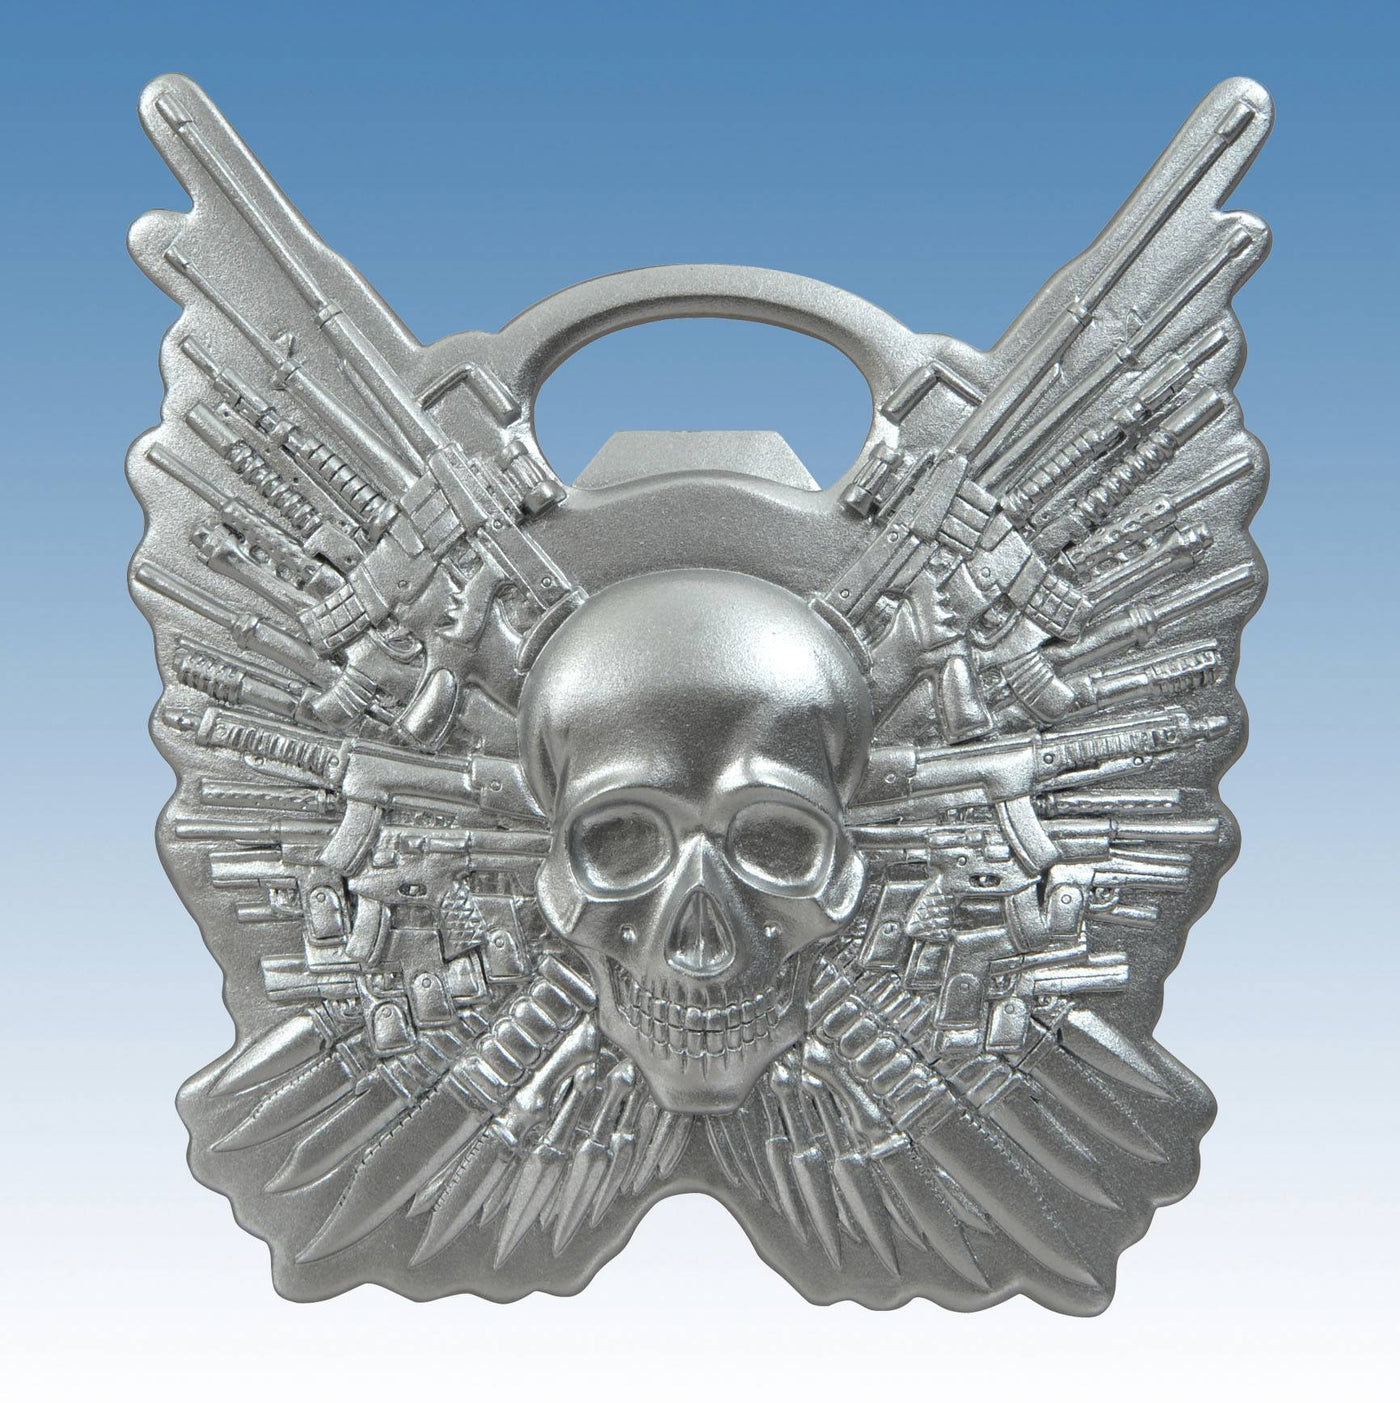 Expendables Bottle Opener Toy Wars